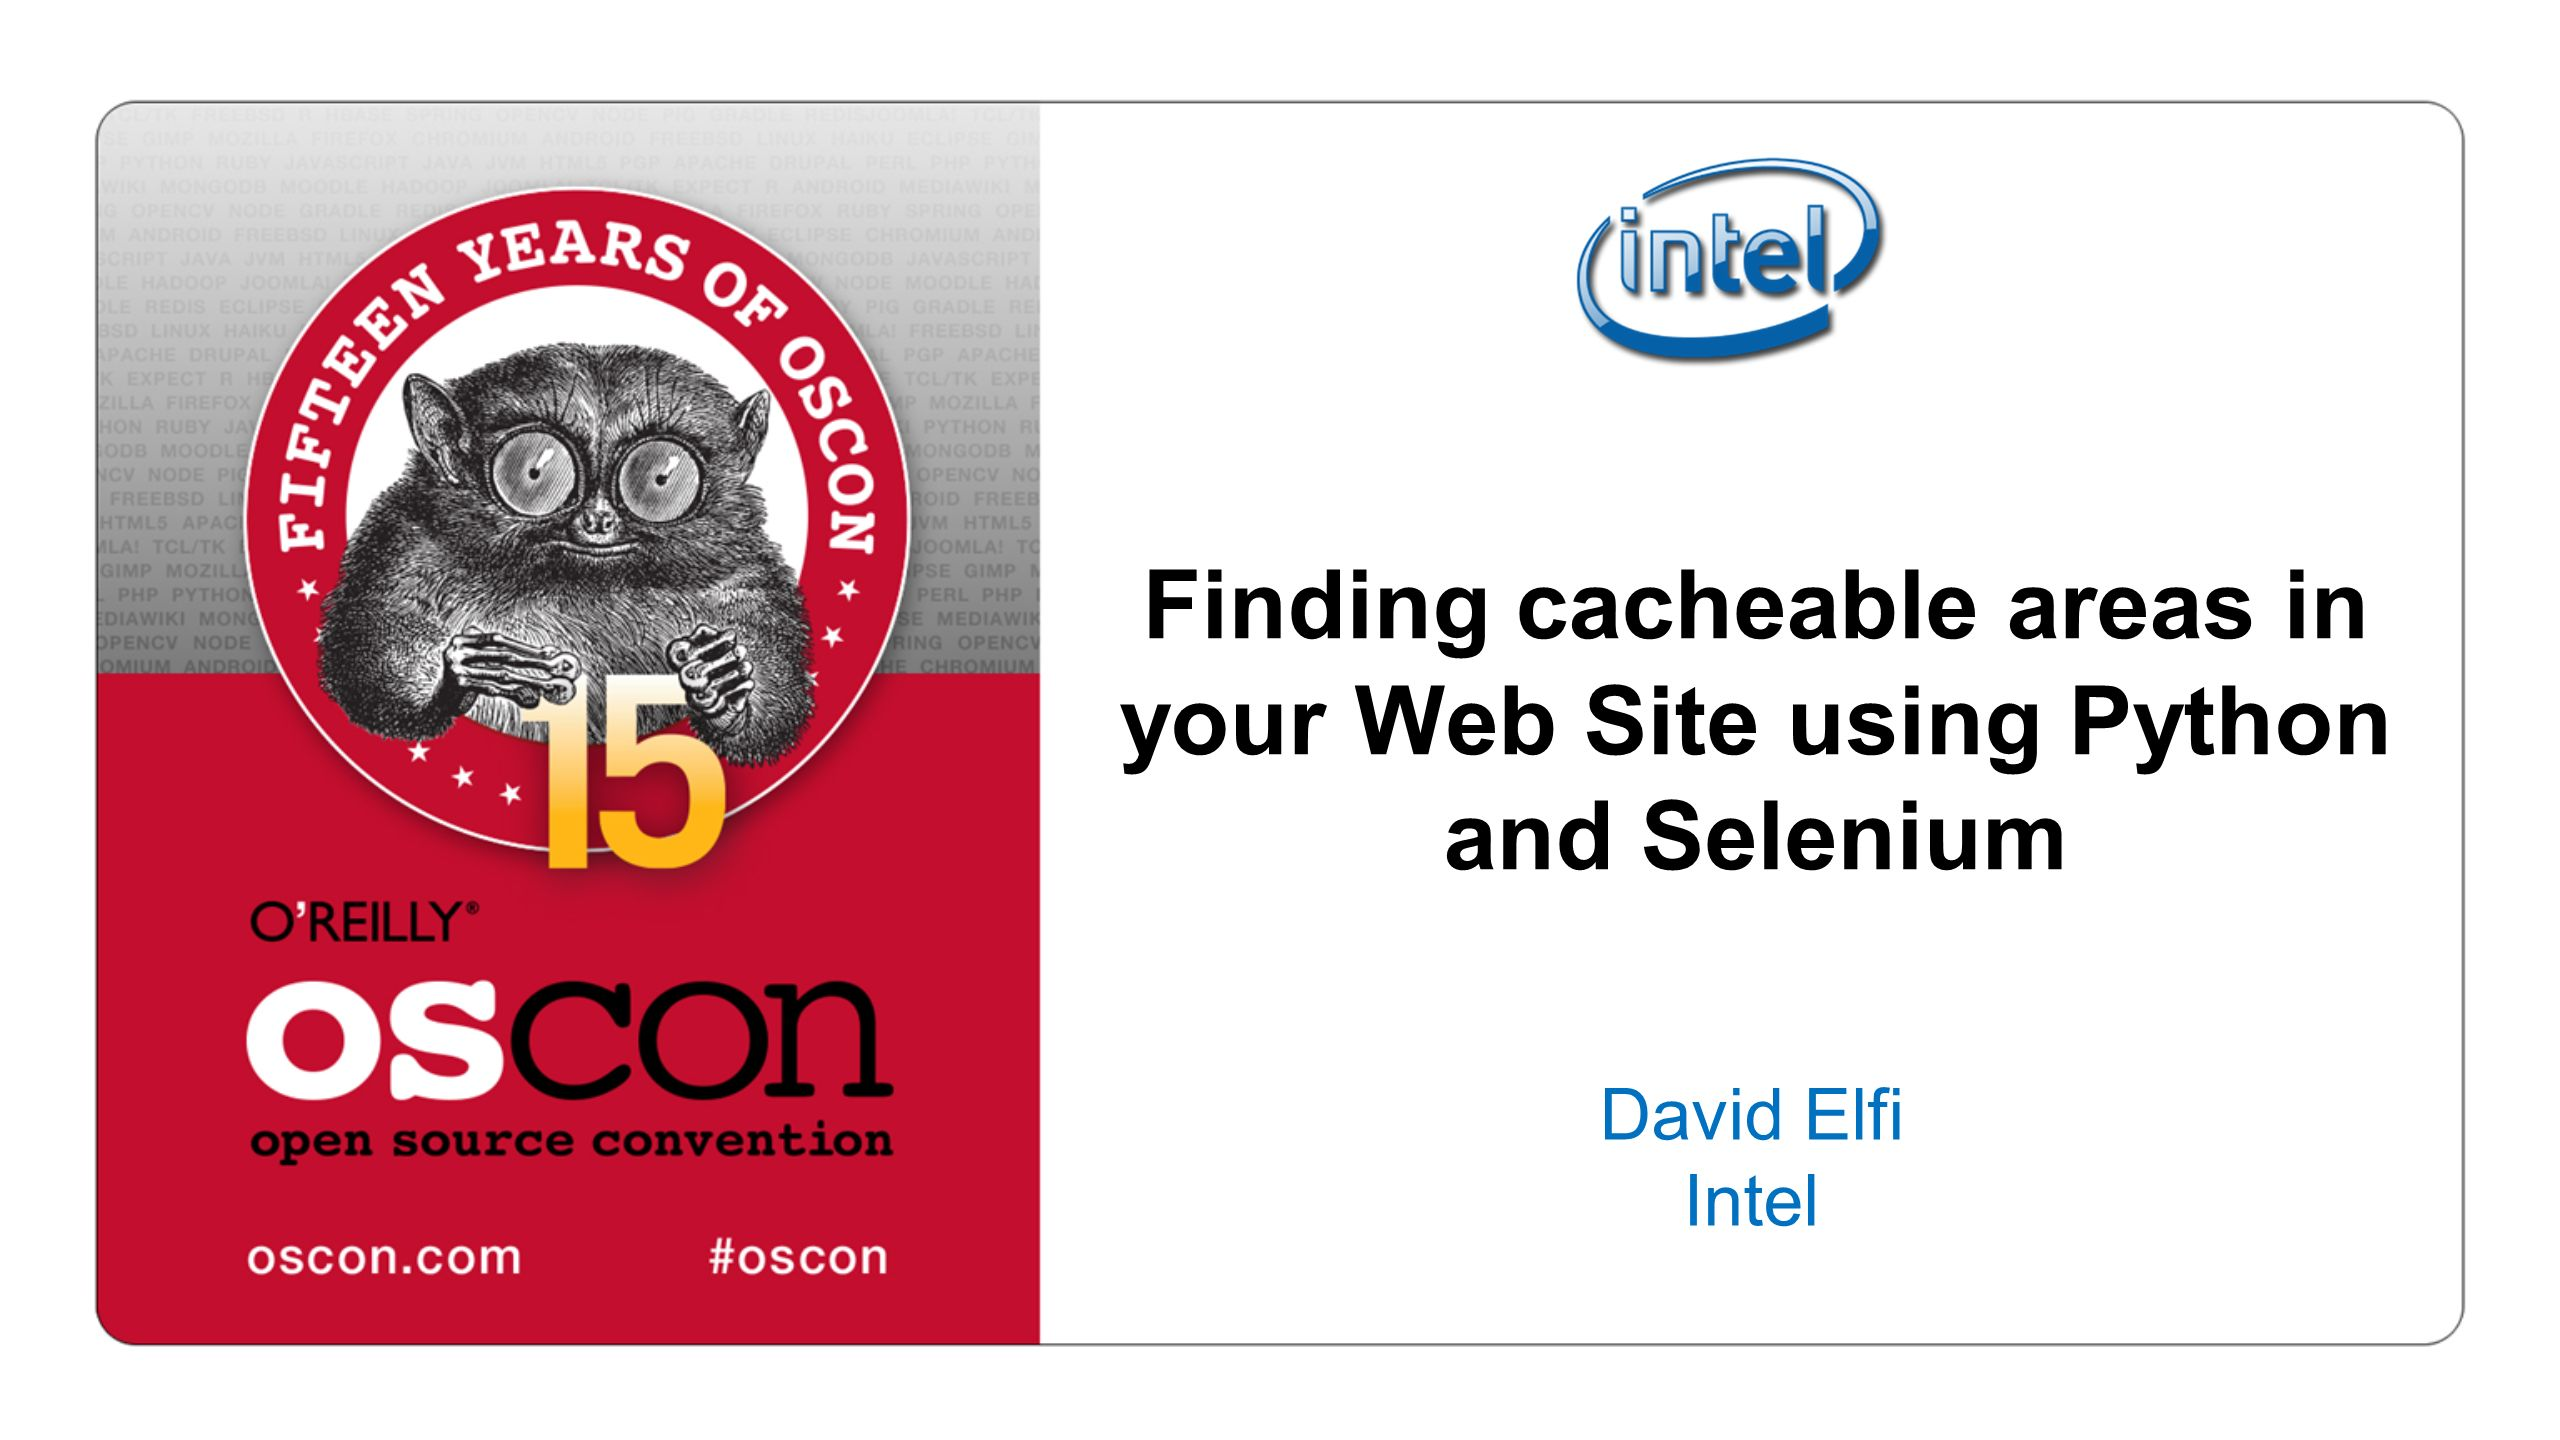 Finding cacheable areas in your Web Site using Python and